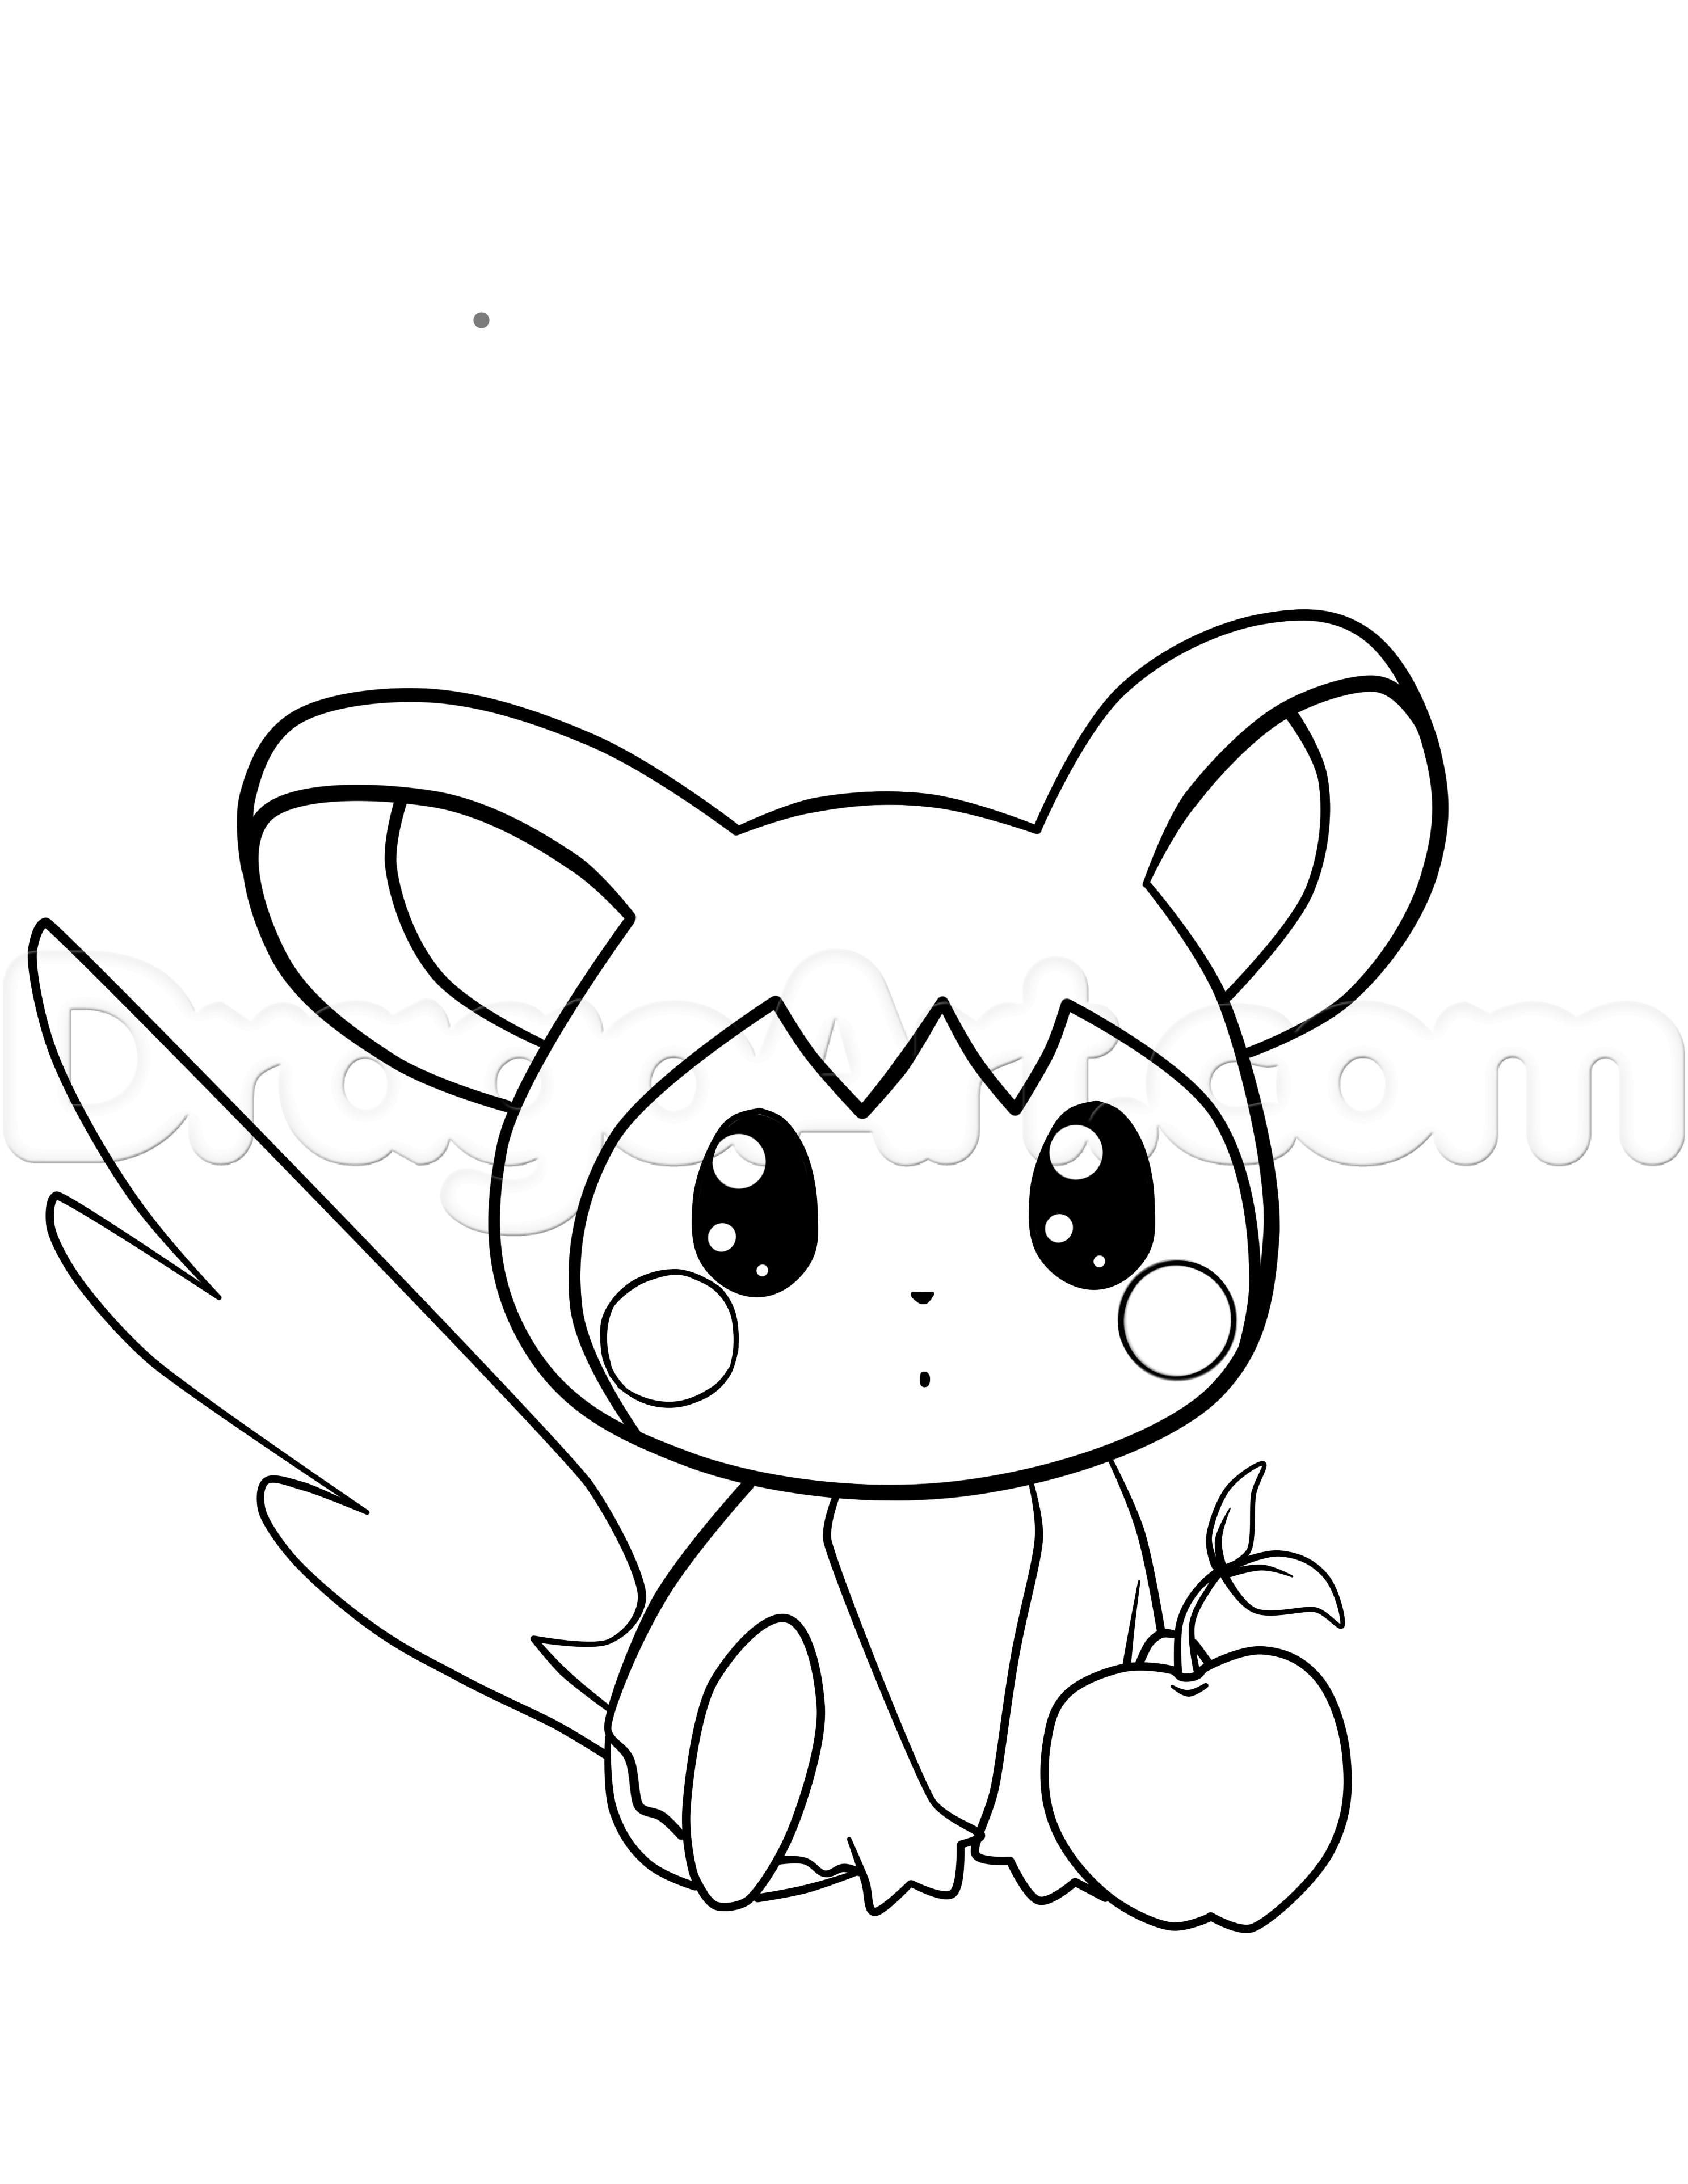 How To Draw Emolga From Pokemon Step By Step Pokemon Characters Anime Draw Japanese Anime Draw Manga Free Onl Drawings Character Drawing Pokemon Drawings